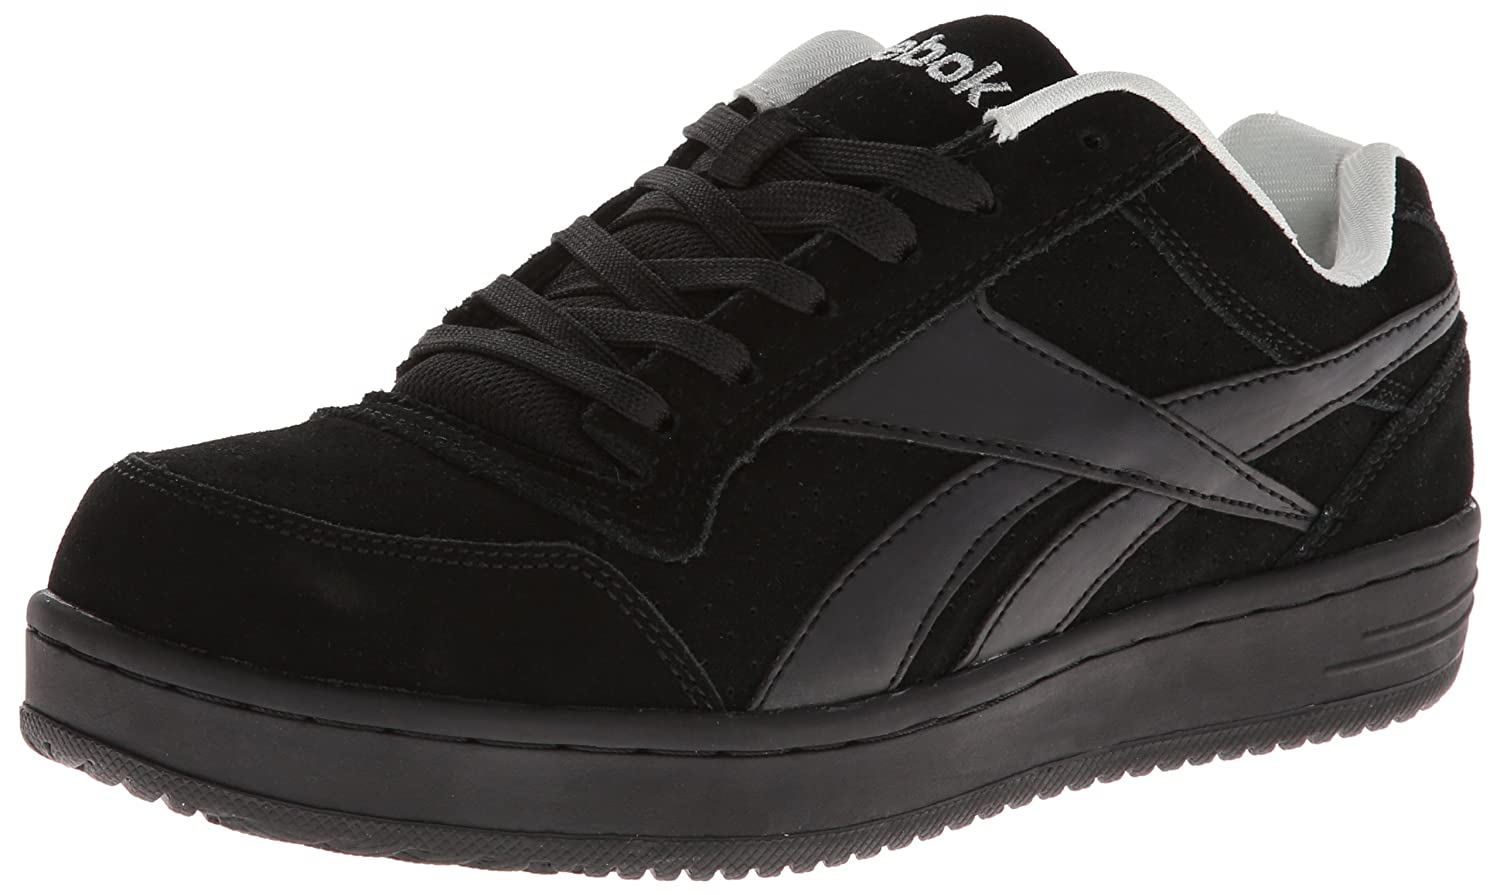 Reebok Work Women's Soyay RB191 Athletic Safety Shoe B00A7VMUCS 11.5 W US|Black